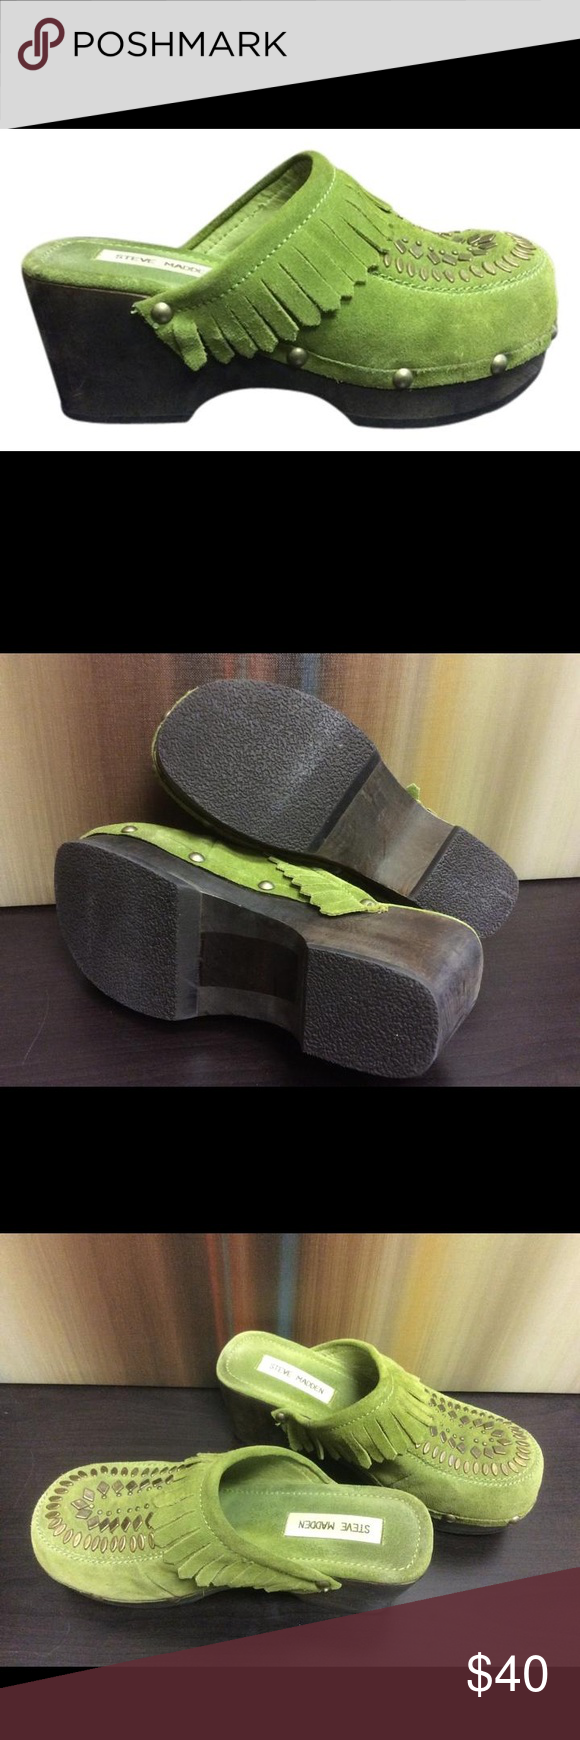 Steve Madden Women's Clog Shoes Steve Madden Women's Clog Shoes  **Condition: Like New  Dayze 7B Leather Upper Man made balance   Type:Mules & Clogs Size:7 Width:Regular (M, B) Heel Height:Medium 2-3 Brand:Steve Madden Color:Green Style/Collection:Dayze Style Tags:Leather Man Made Steve Madden Mules & Clogs Steve Madden Shoes Mules & Clogs